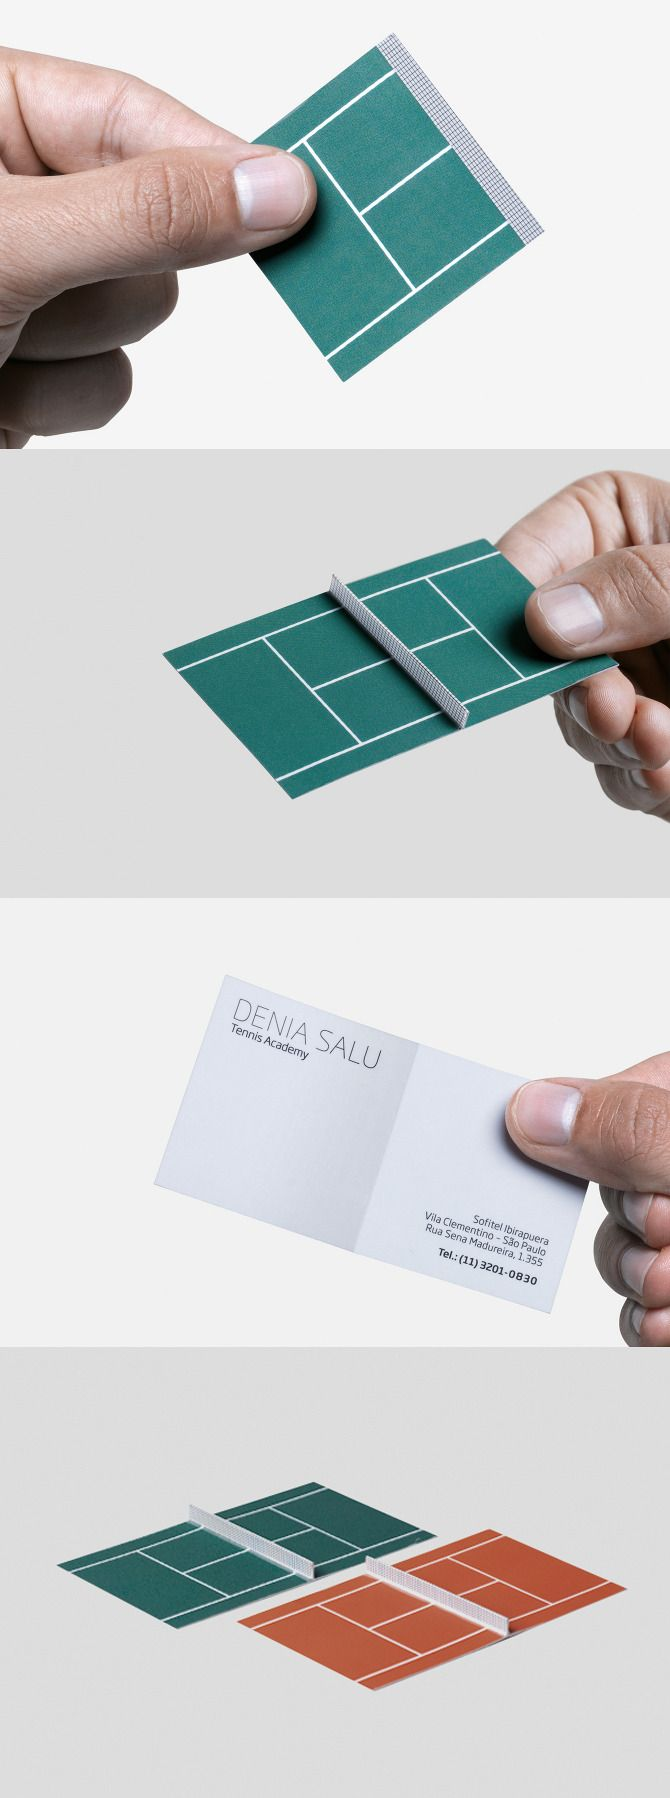 #HighHeelers this is so clever - Tennis academy #business #card opens up into a tennis court!